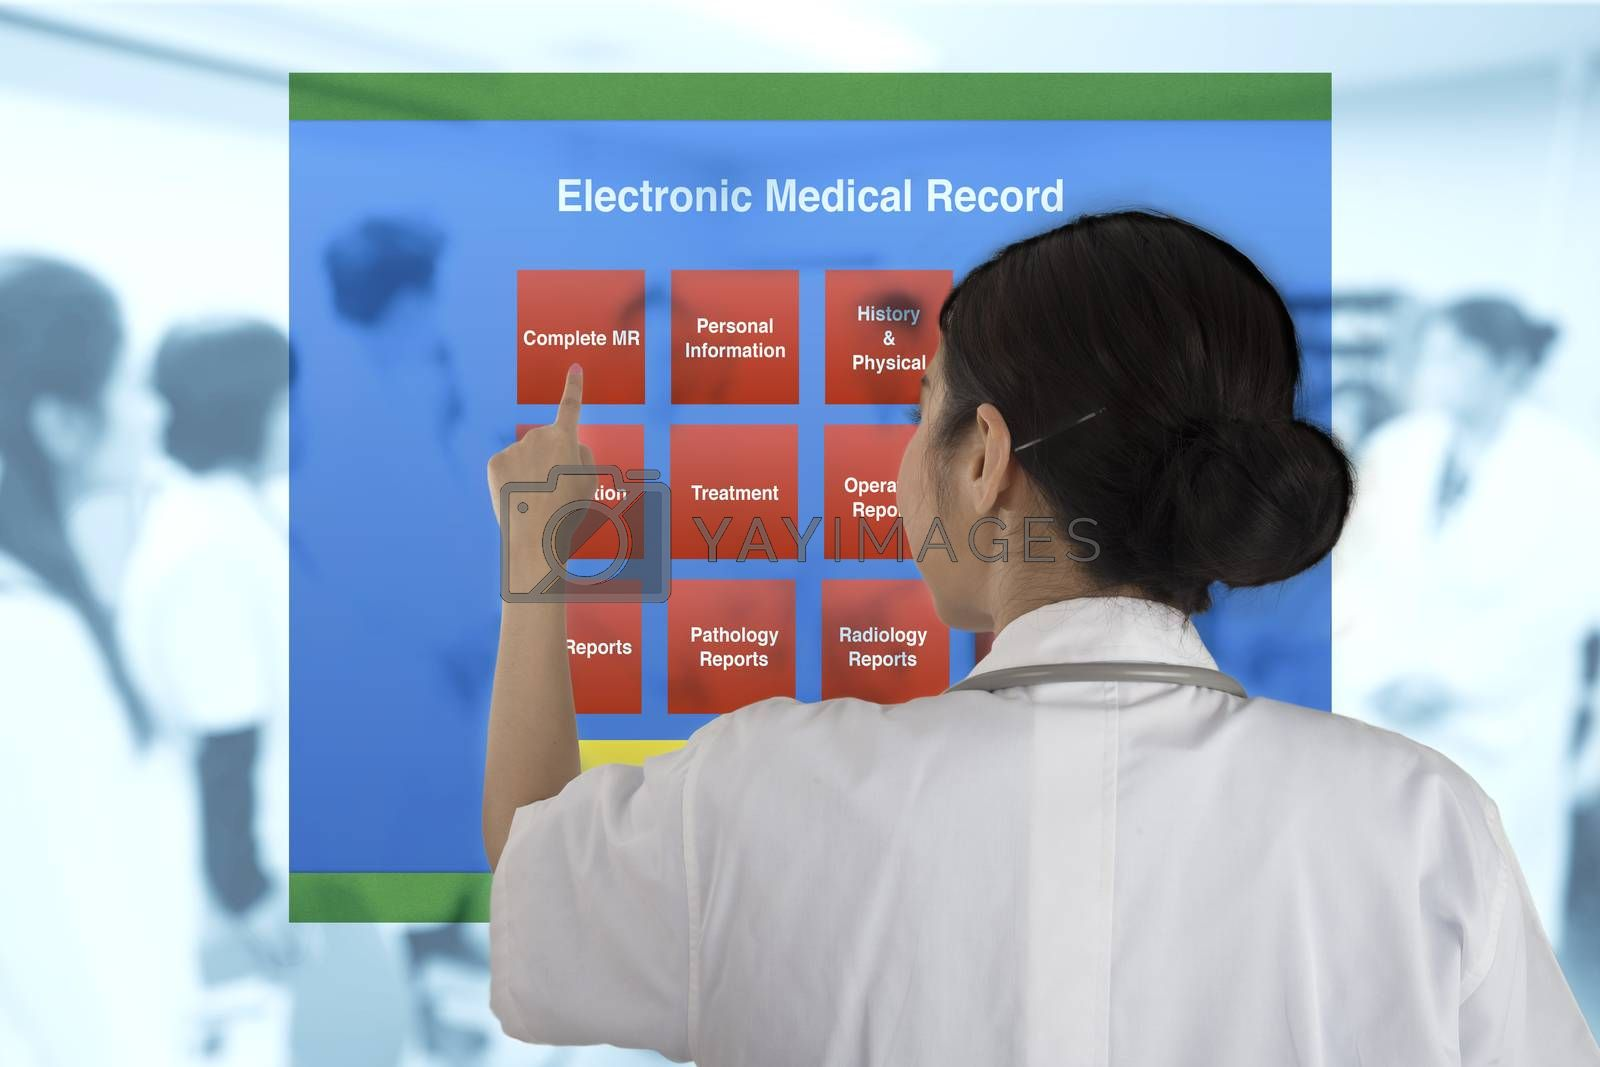 Female doctor pointing to choose working item from electronic medical record menu with blur background of doctor meeting.